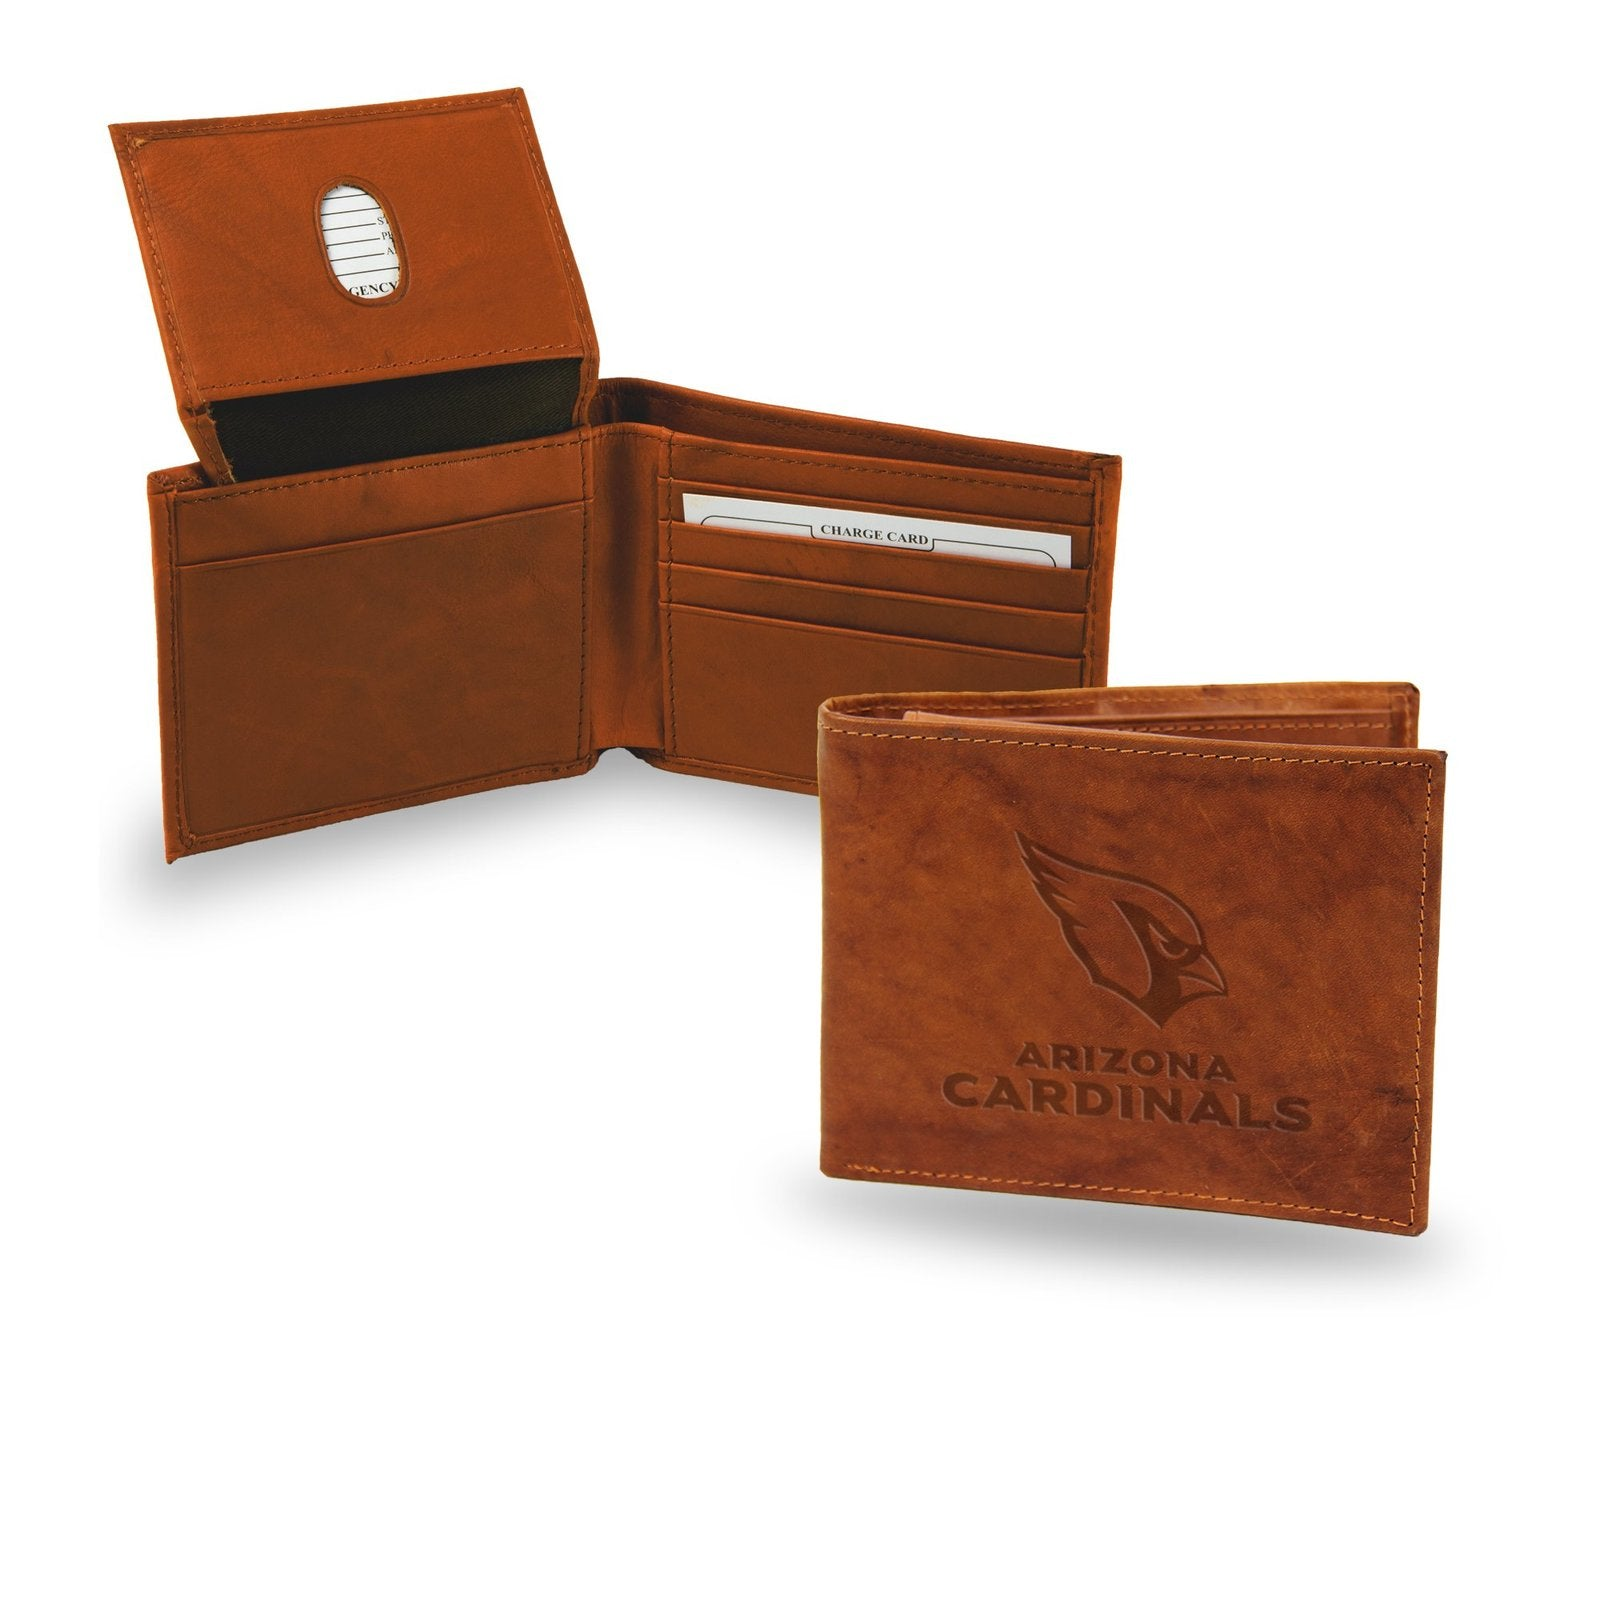 Arizona Cardinals Leather Wallet